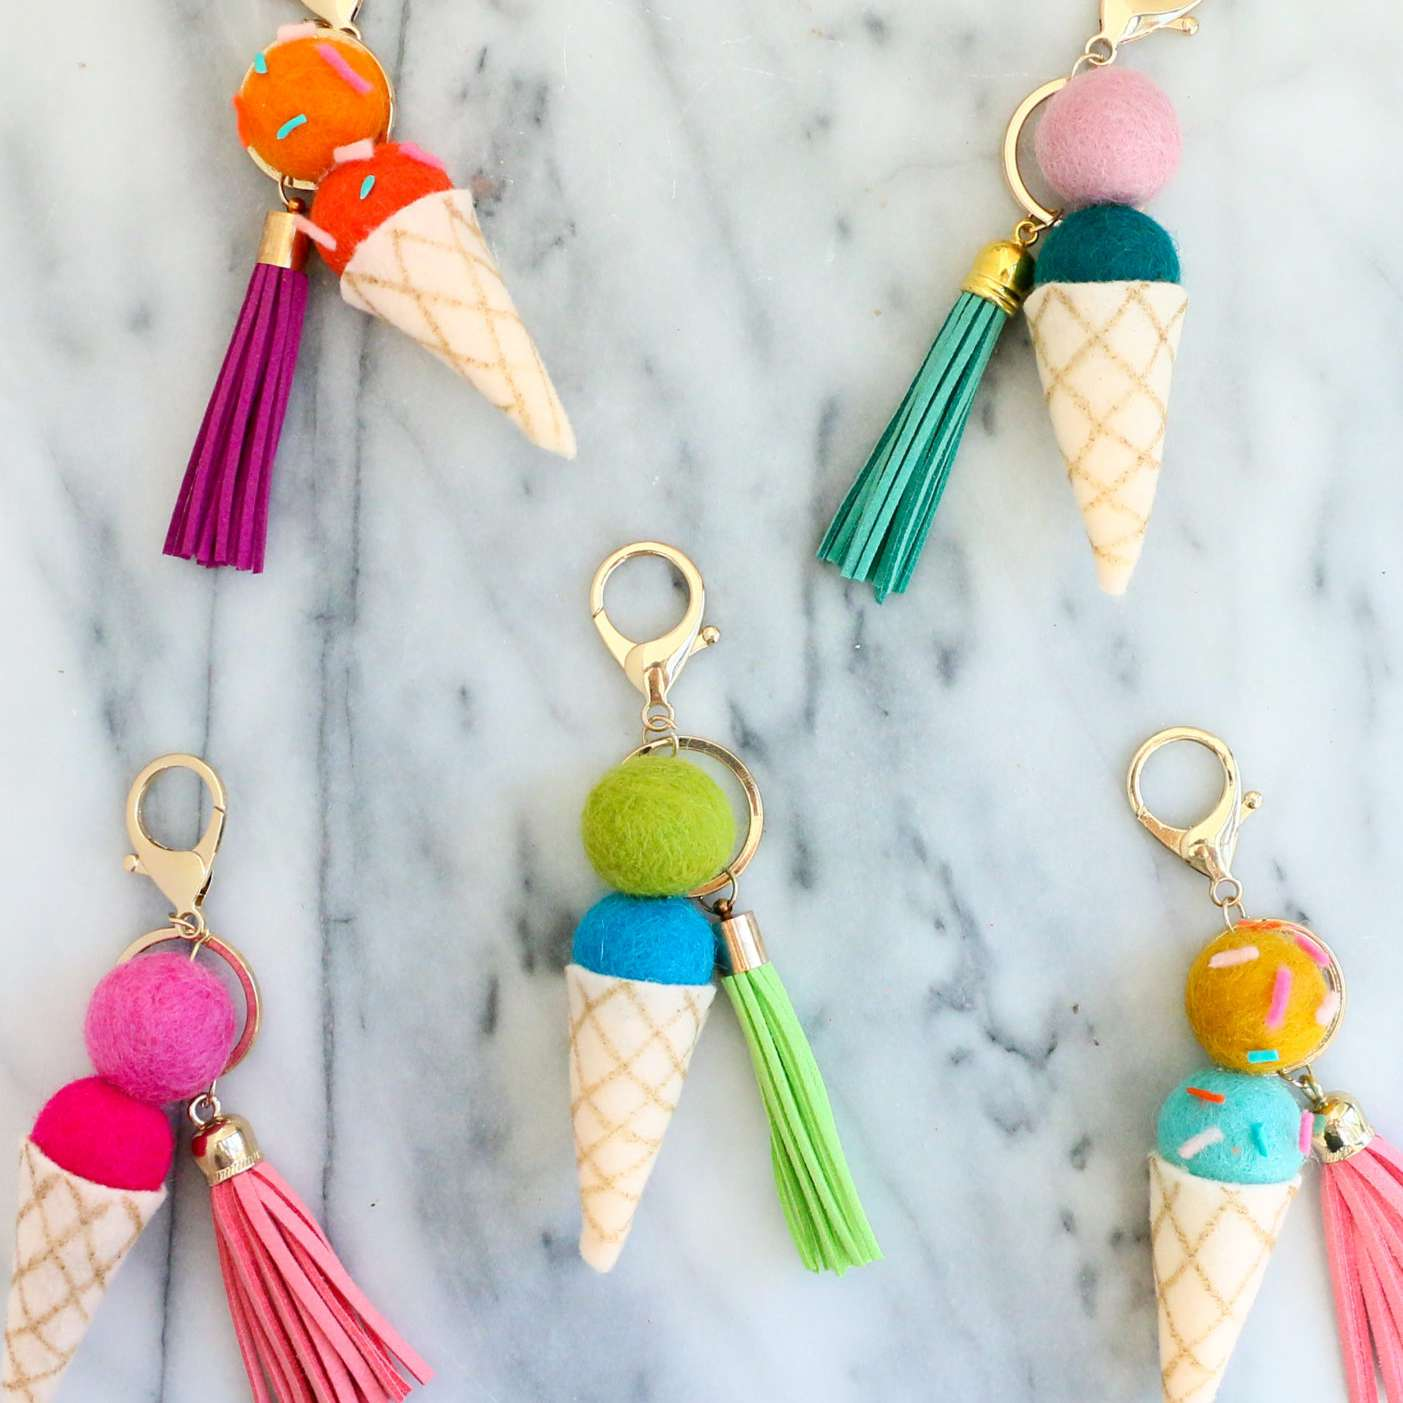 key chains made of felt pieces that look like ice cream cones